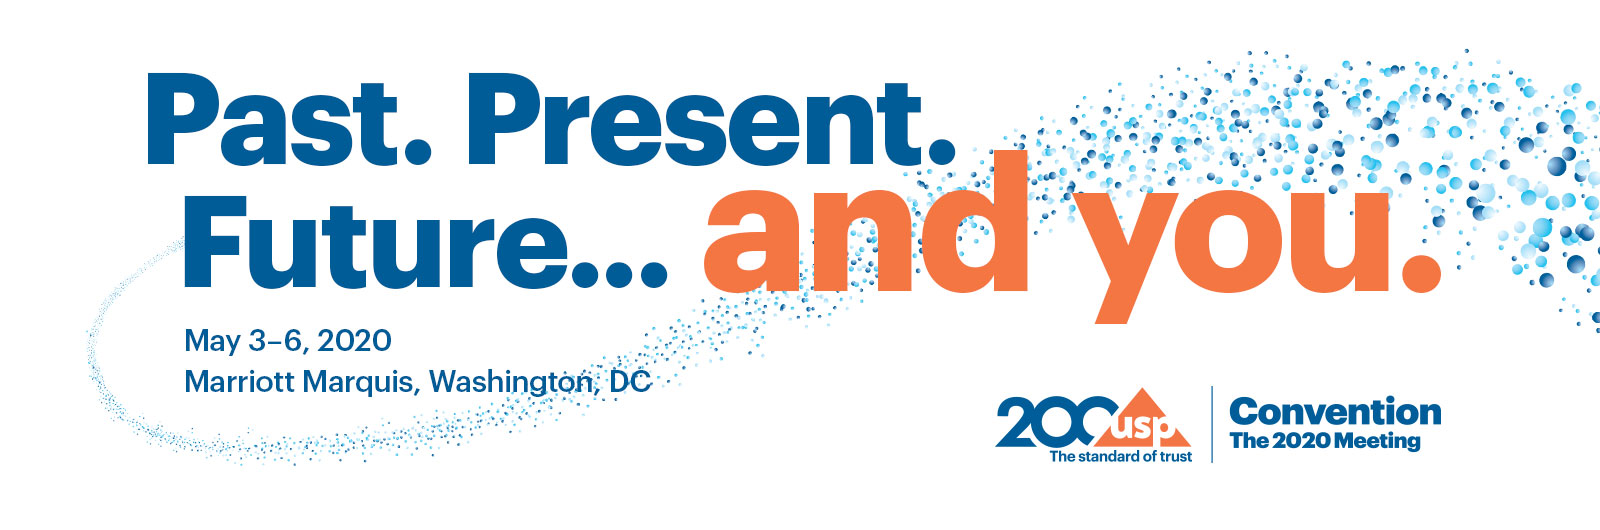 Past. Present. Future... and you.  The 2020 Convention, May 3-6, 2020, Marriott Marquis, Washington, DC